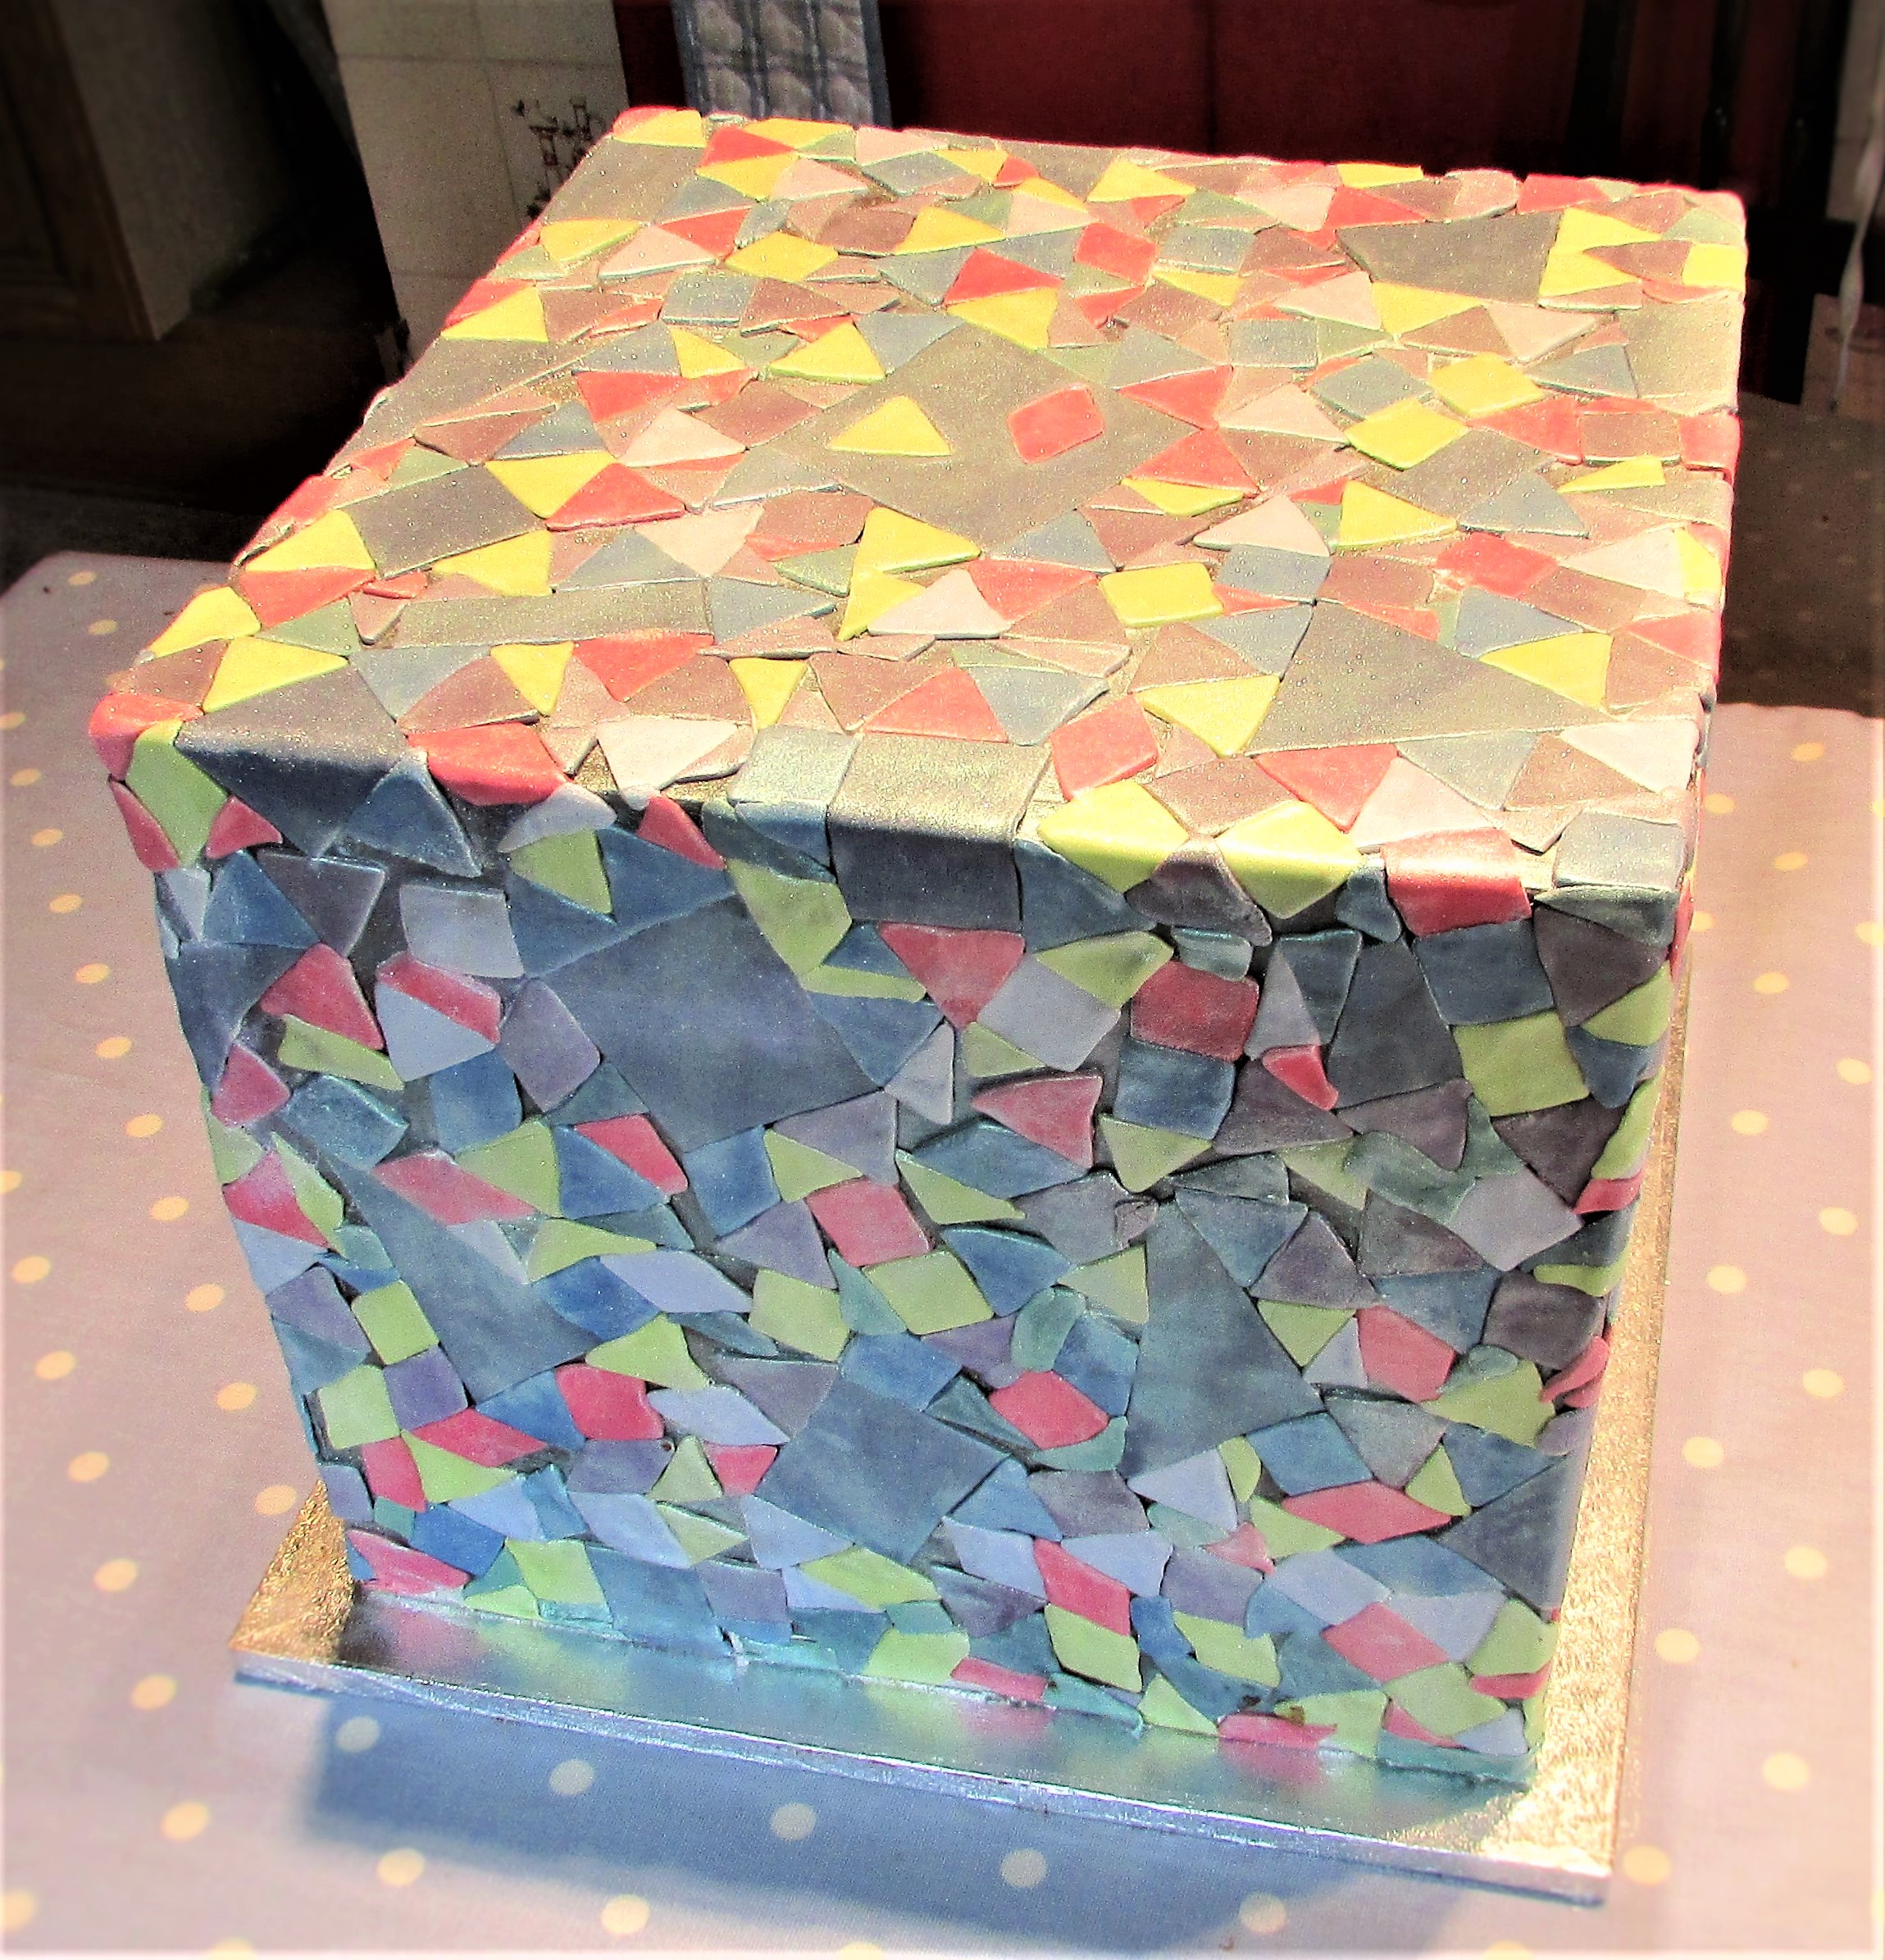 Cube shaped party cake with mosaic decoration